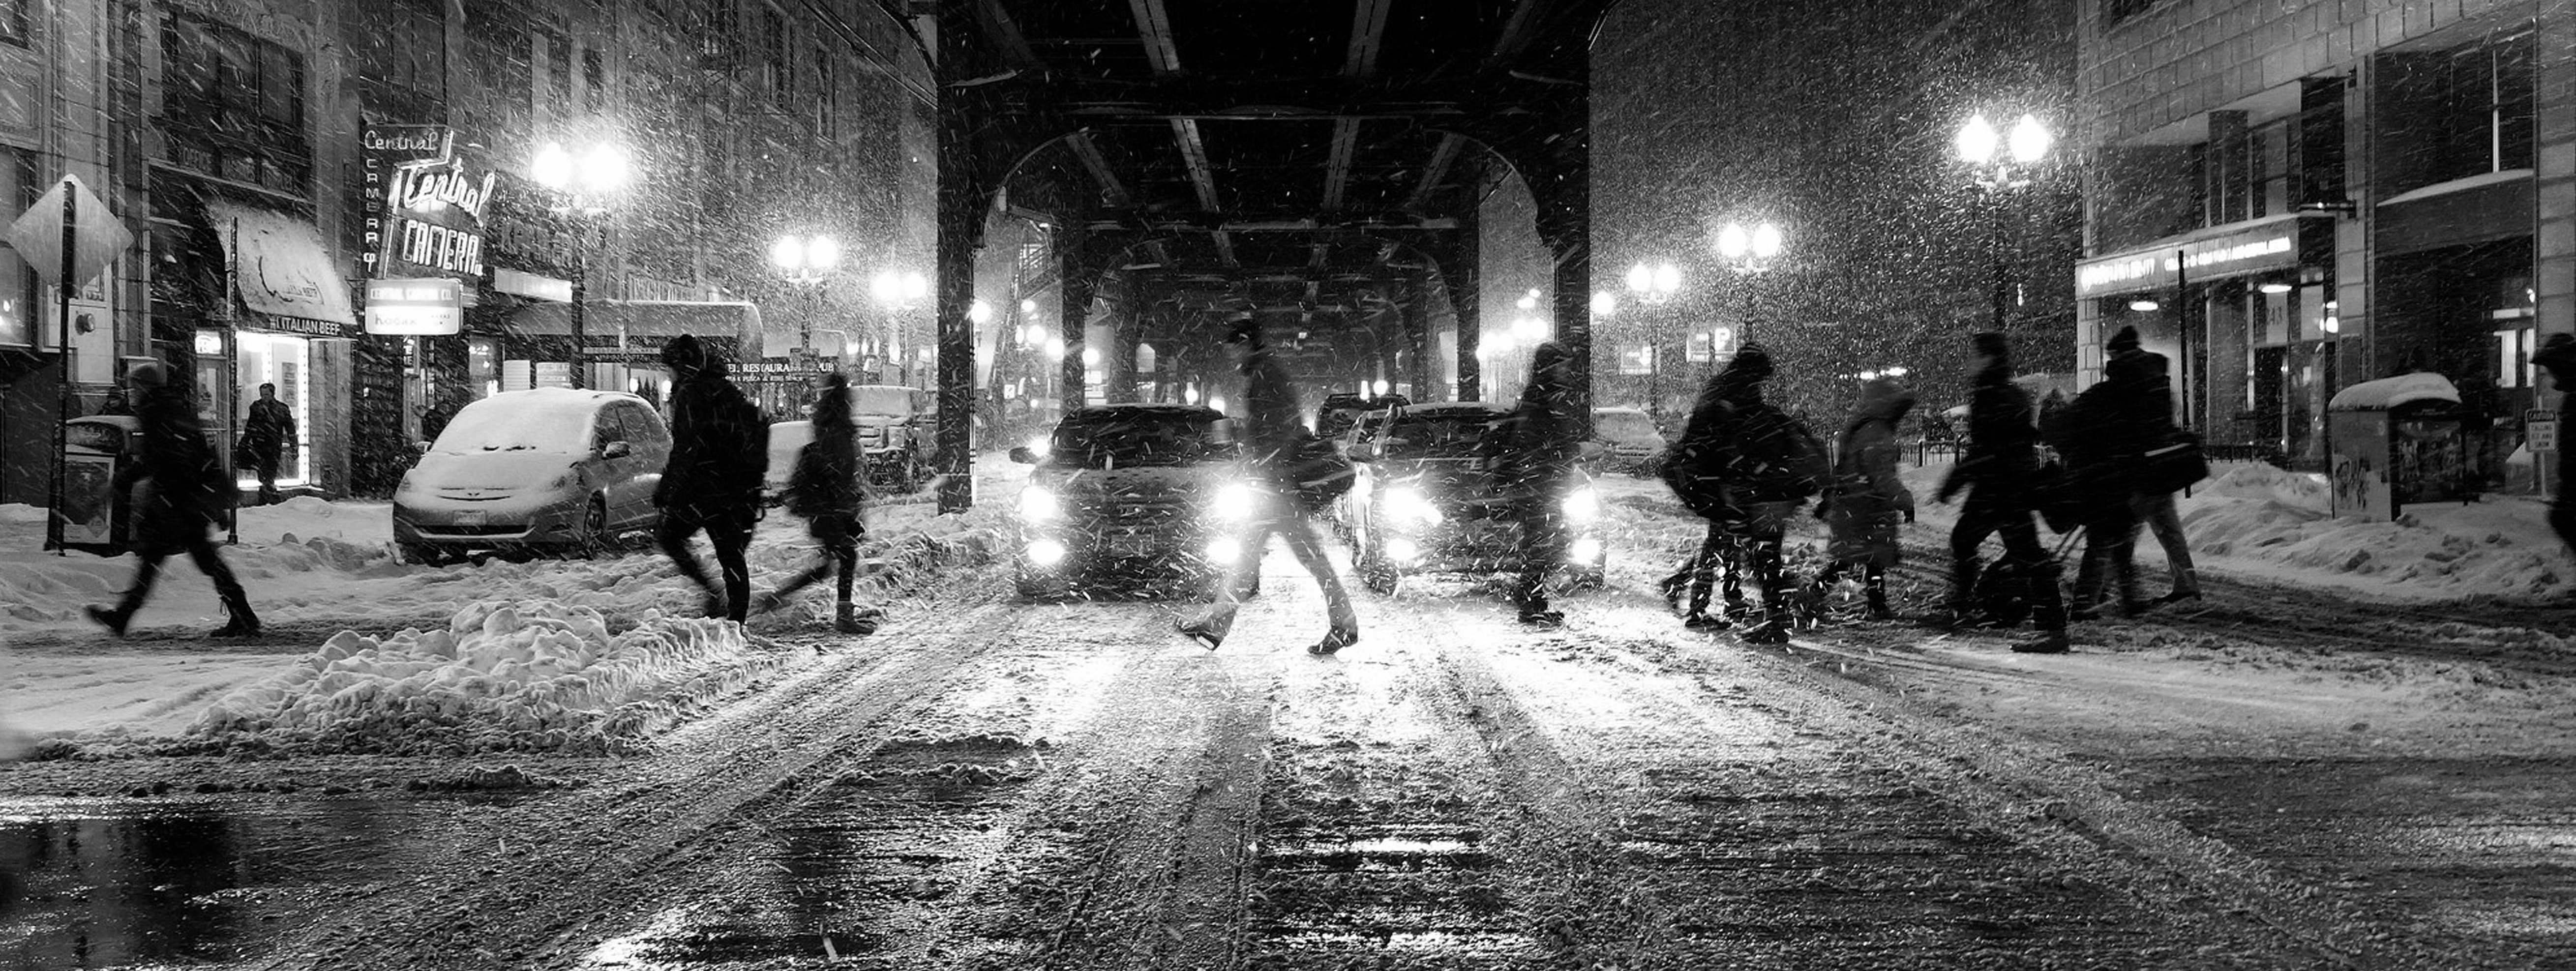 black and white photo of people crossing the street while it's snowing